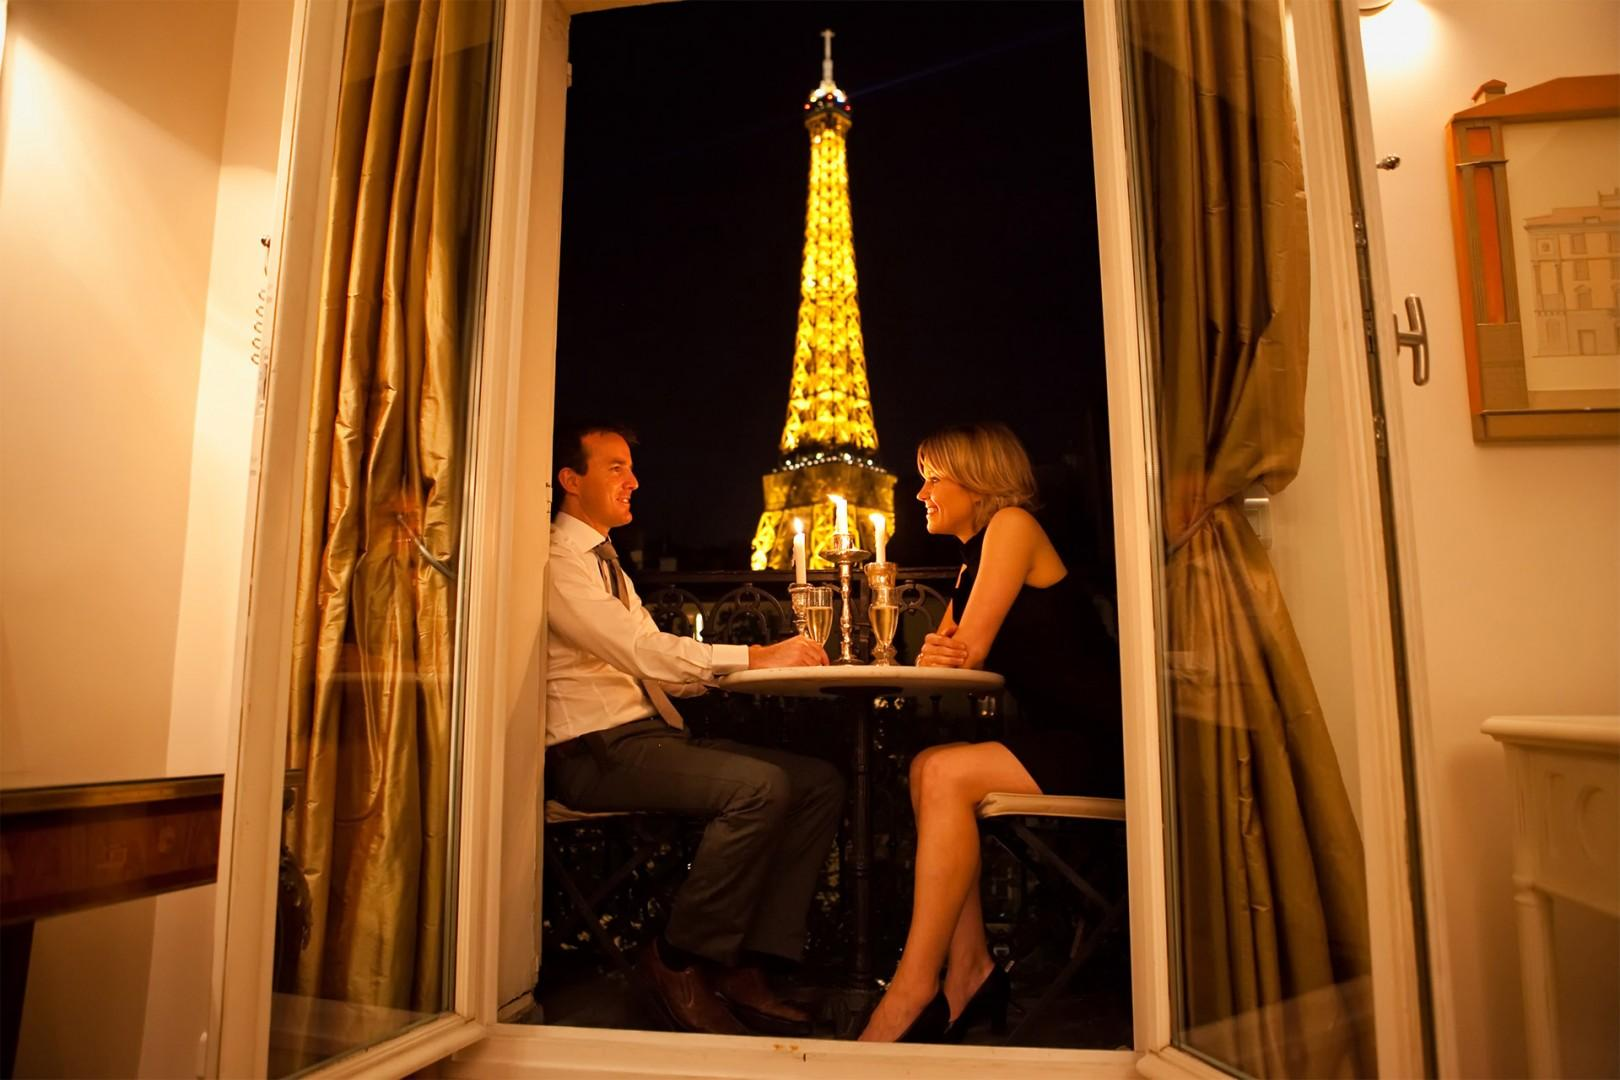 The private balcony is the perfect setting for romantic evenings.